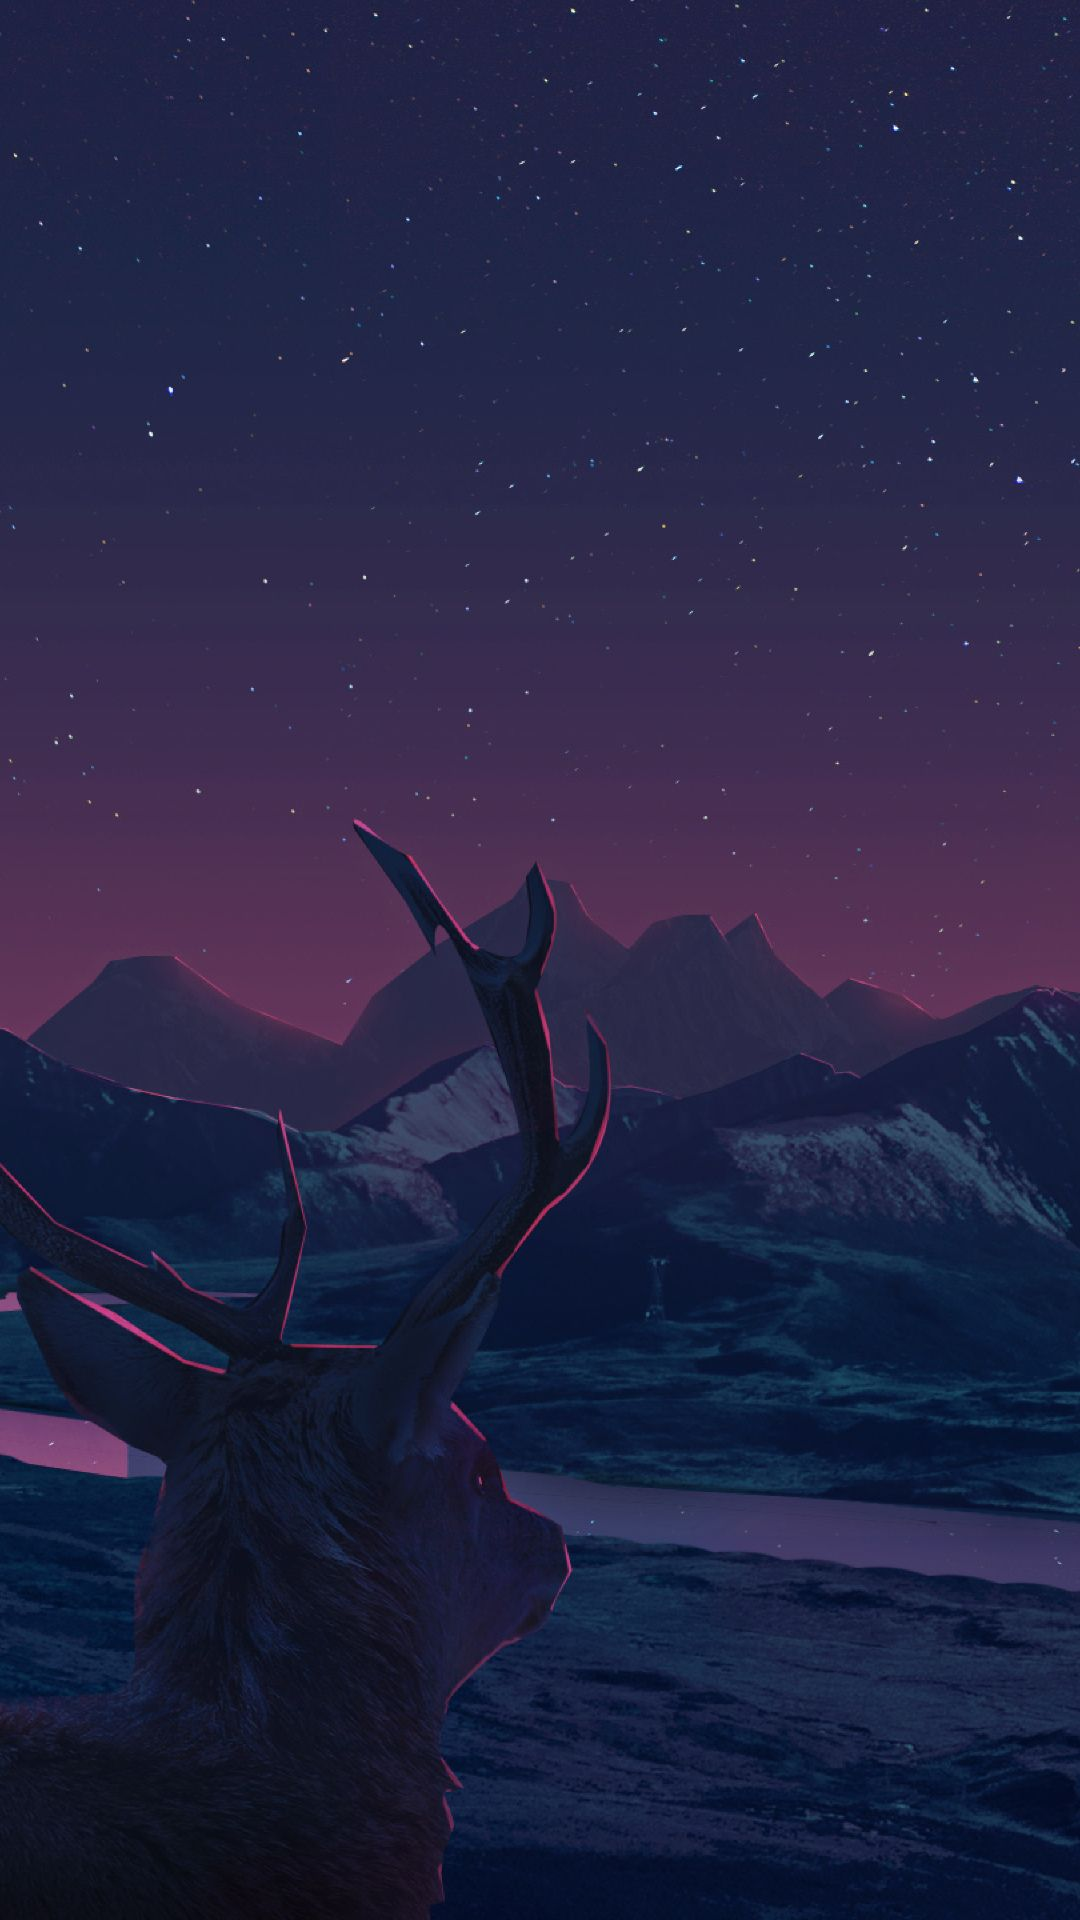 Wallpaper Anime Hd 1080 X 1920 1080x1920 Deer Staring At Sunset Anime Iphone 7 6s 6 Plus Download Wallp In 2020 Anime Hd Hd Anime Wallpapers Anime Wallpaper Download